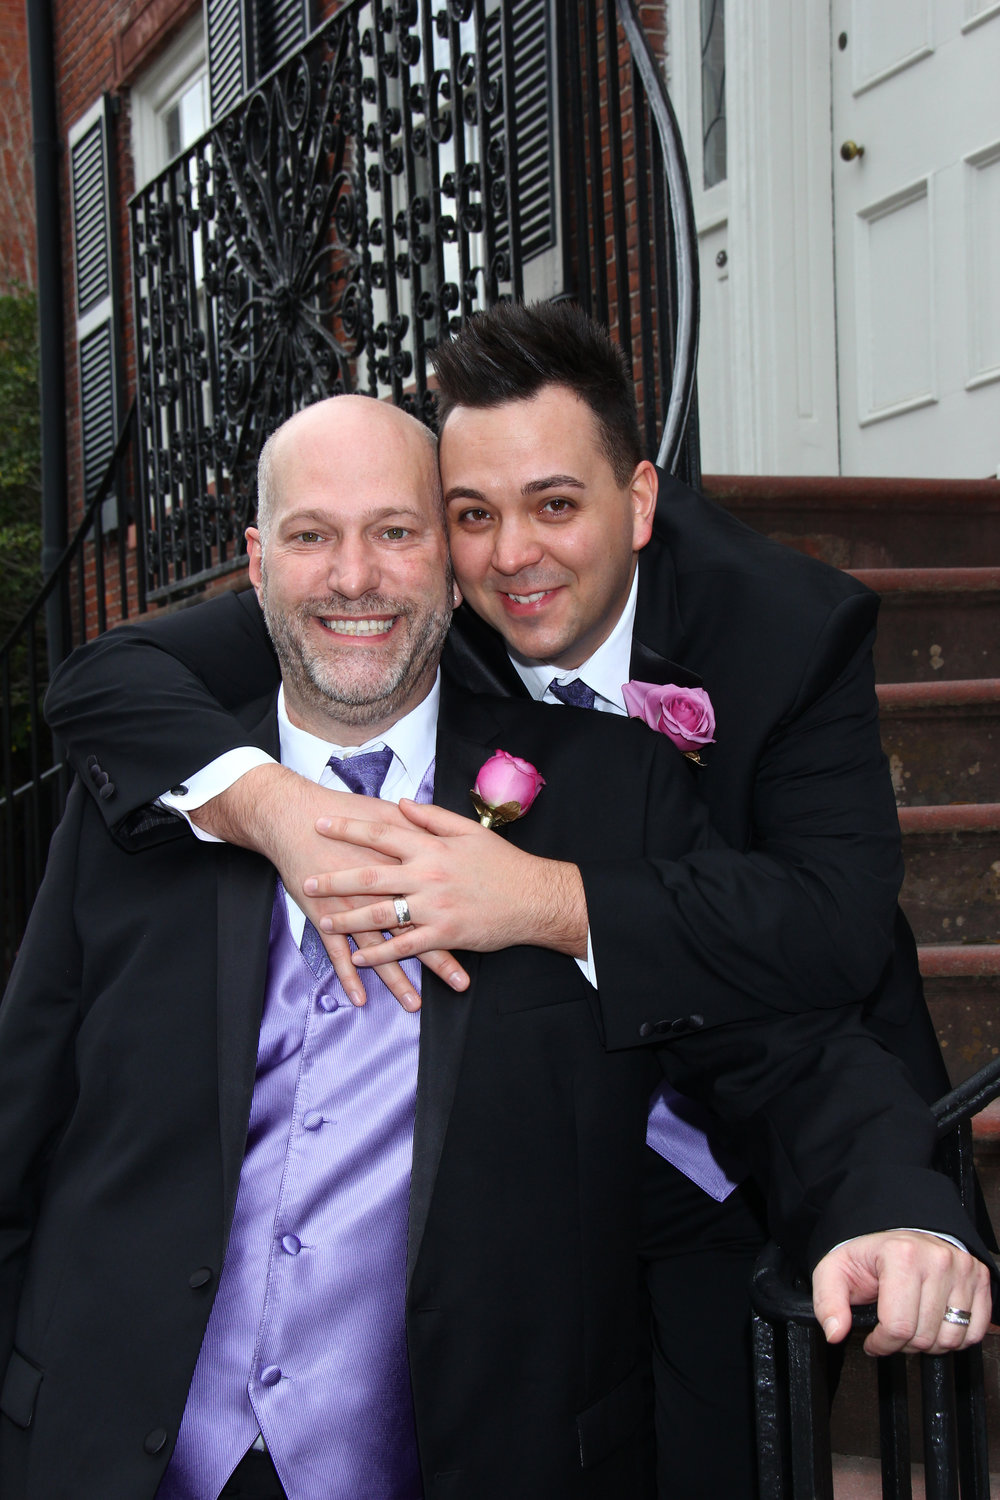 Savannah Wedding package Gay